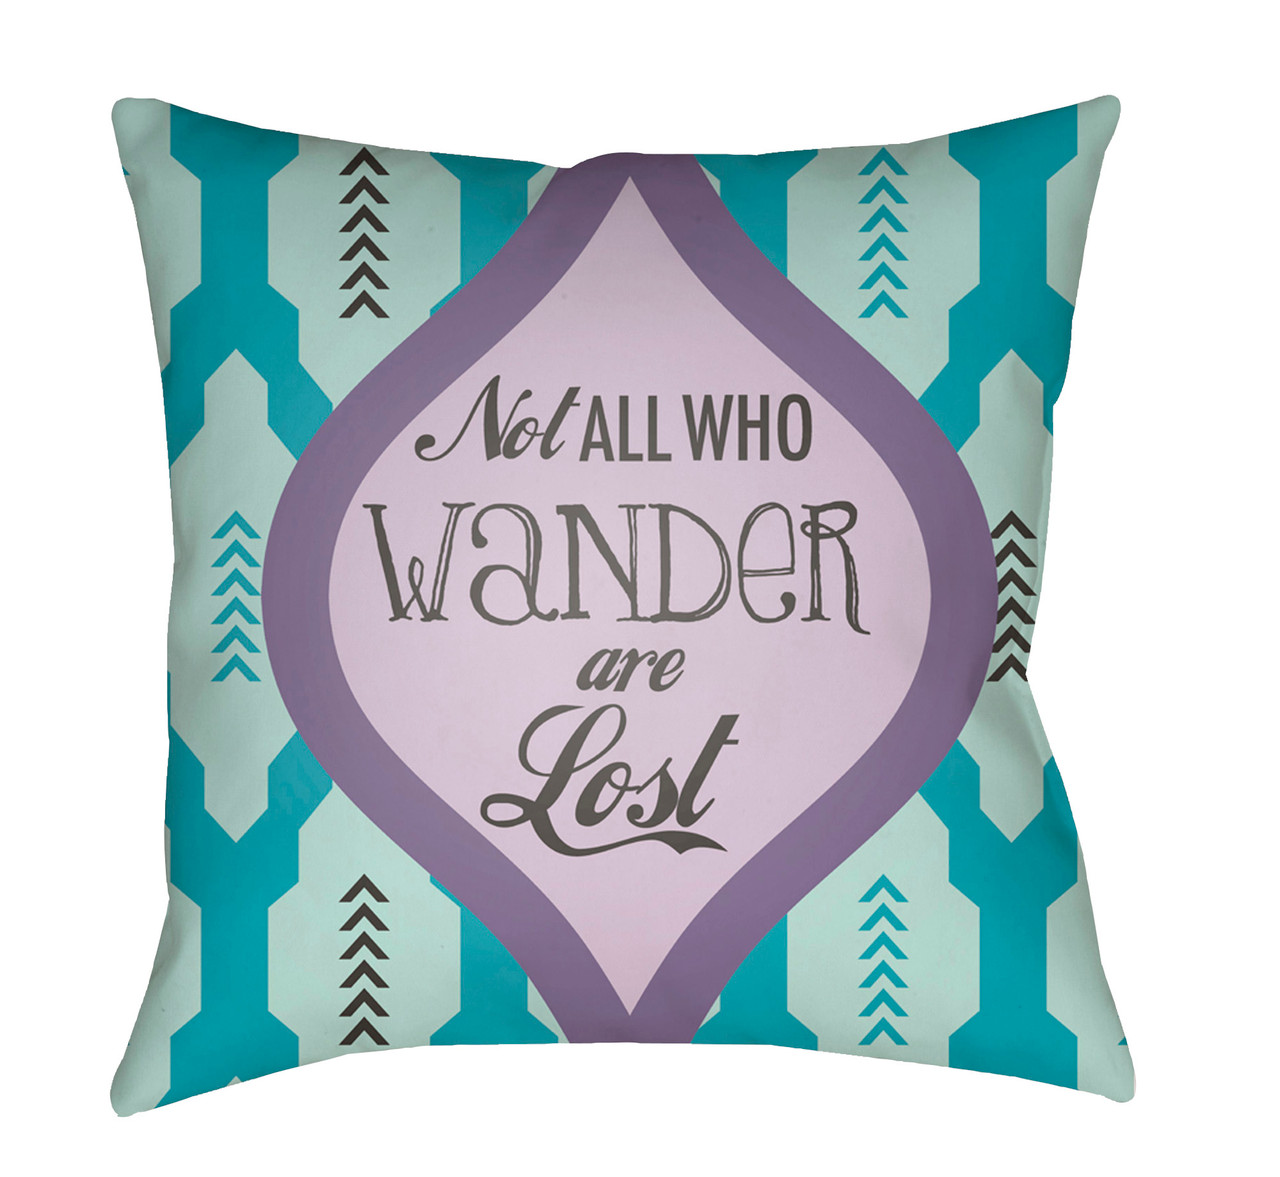 20 Lavender Blue Square Textured Throw Pillow Cover With Knife Edge Christmas Central